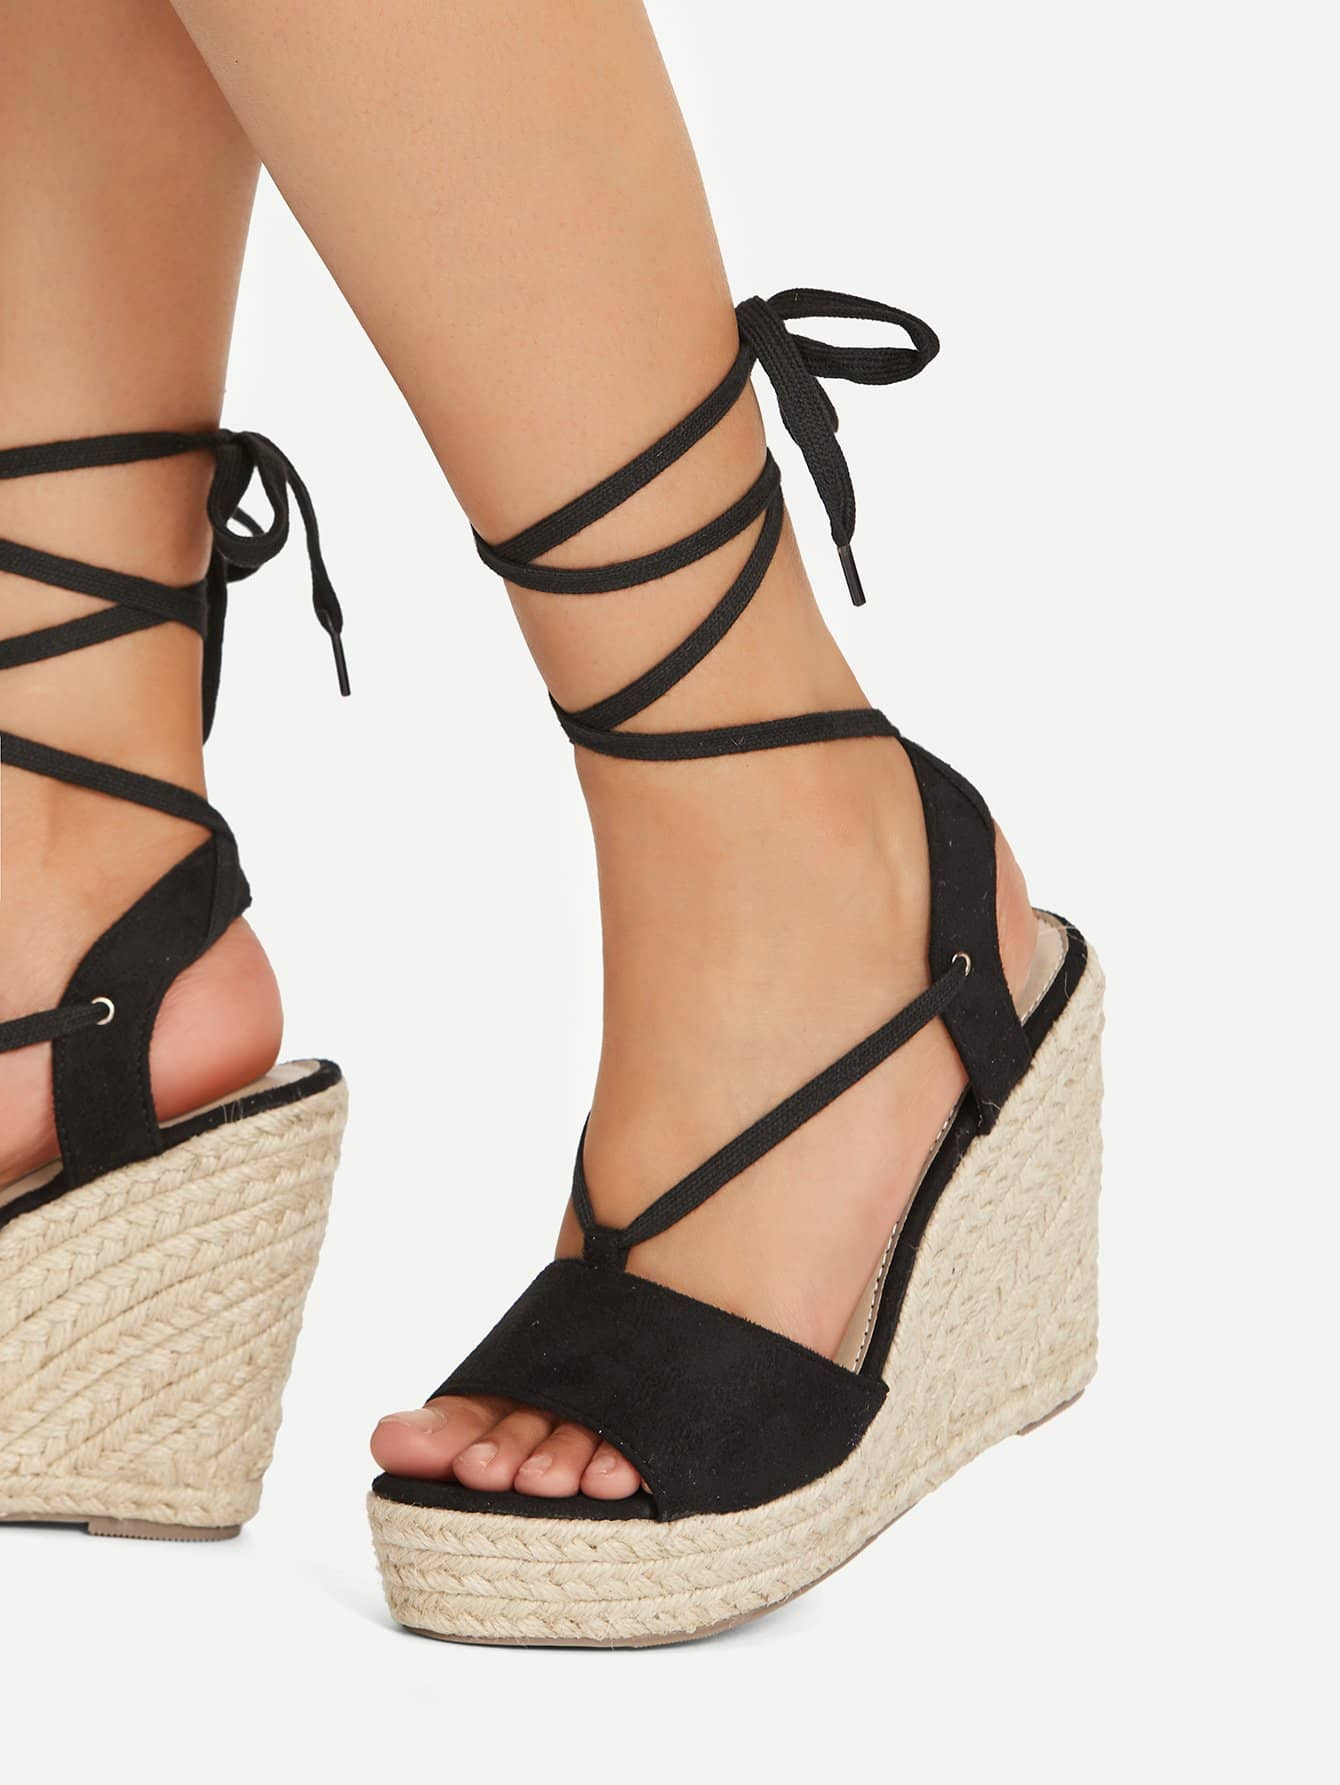 Peep Toe Lace Up Wedge Sandals ladies sandals 2018 new women sandals casual flat shoes fashion peep toe summer beach sandals string bead bohemian wedge sandals